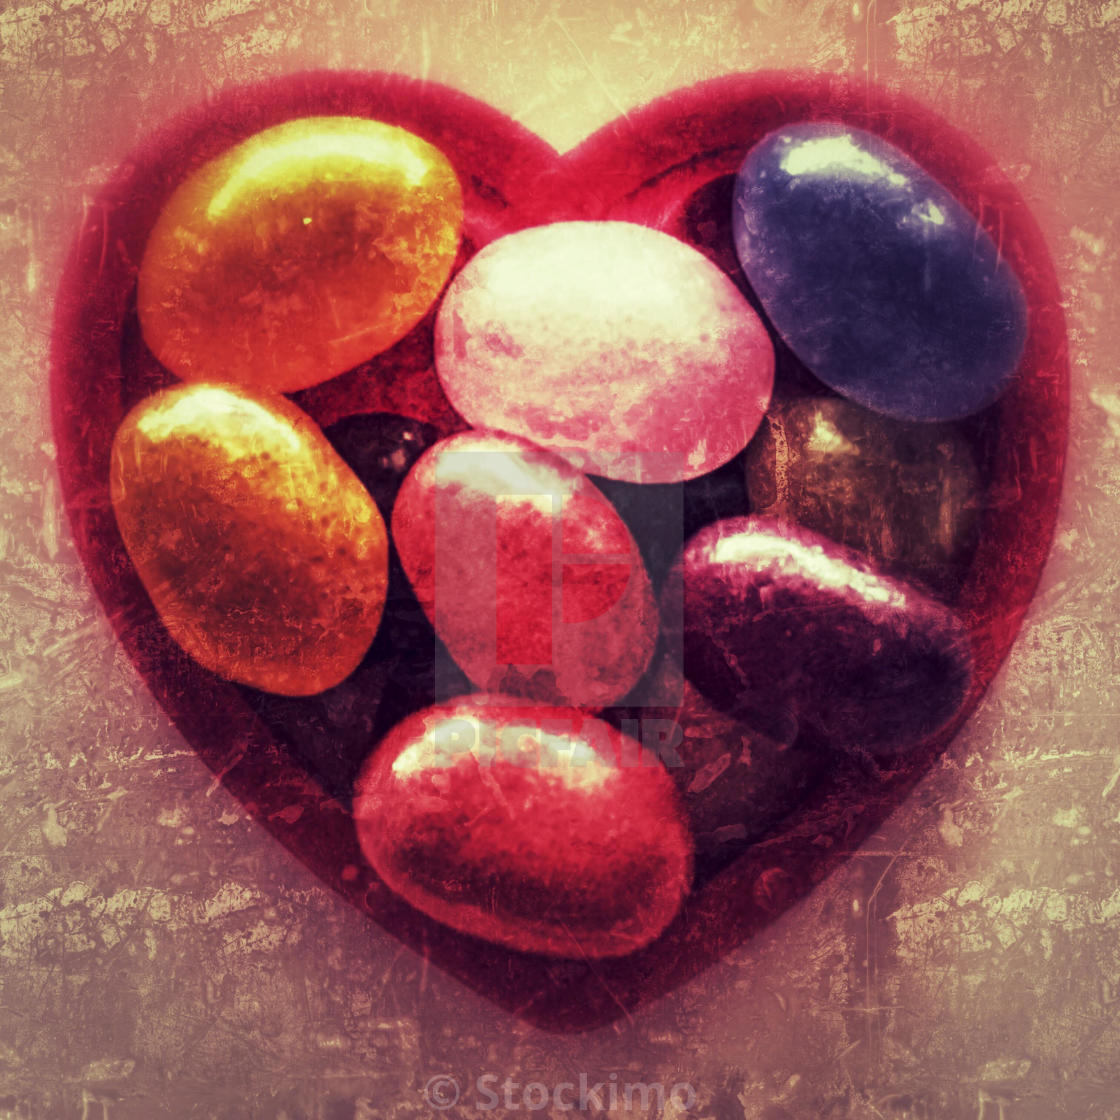 """""""Jelly beans in a heart shape."""" stock image"""